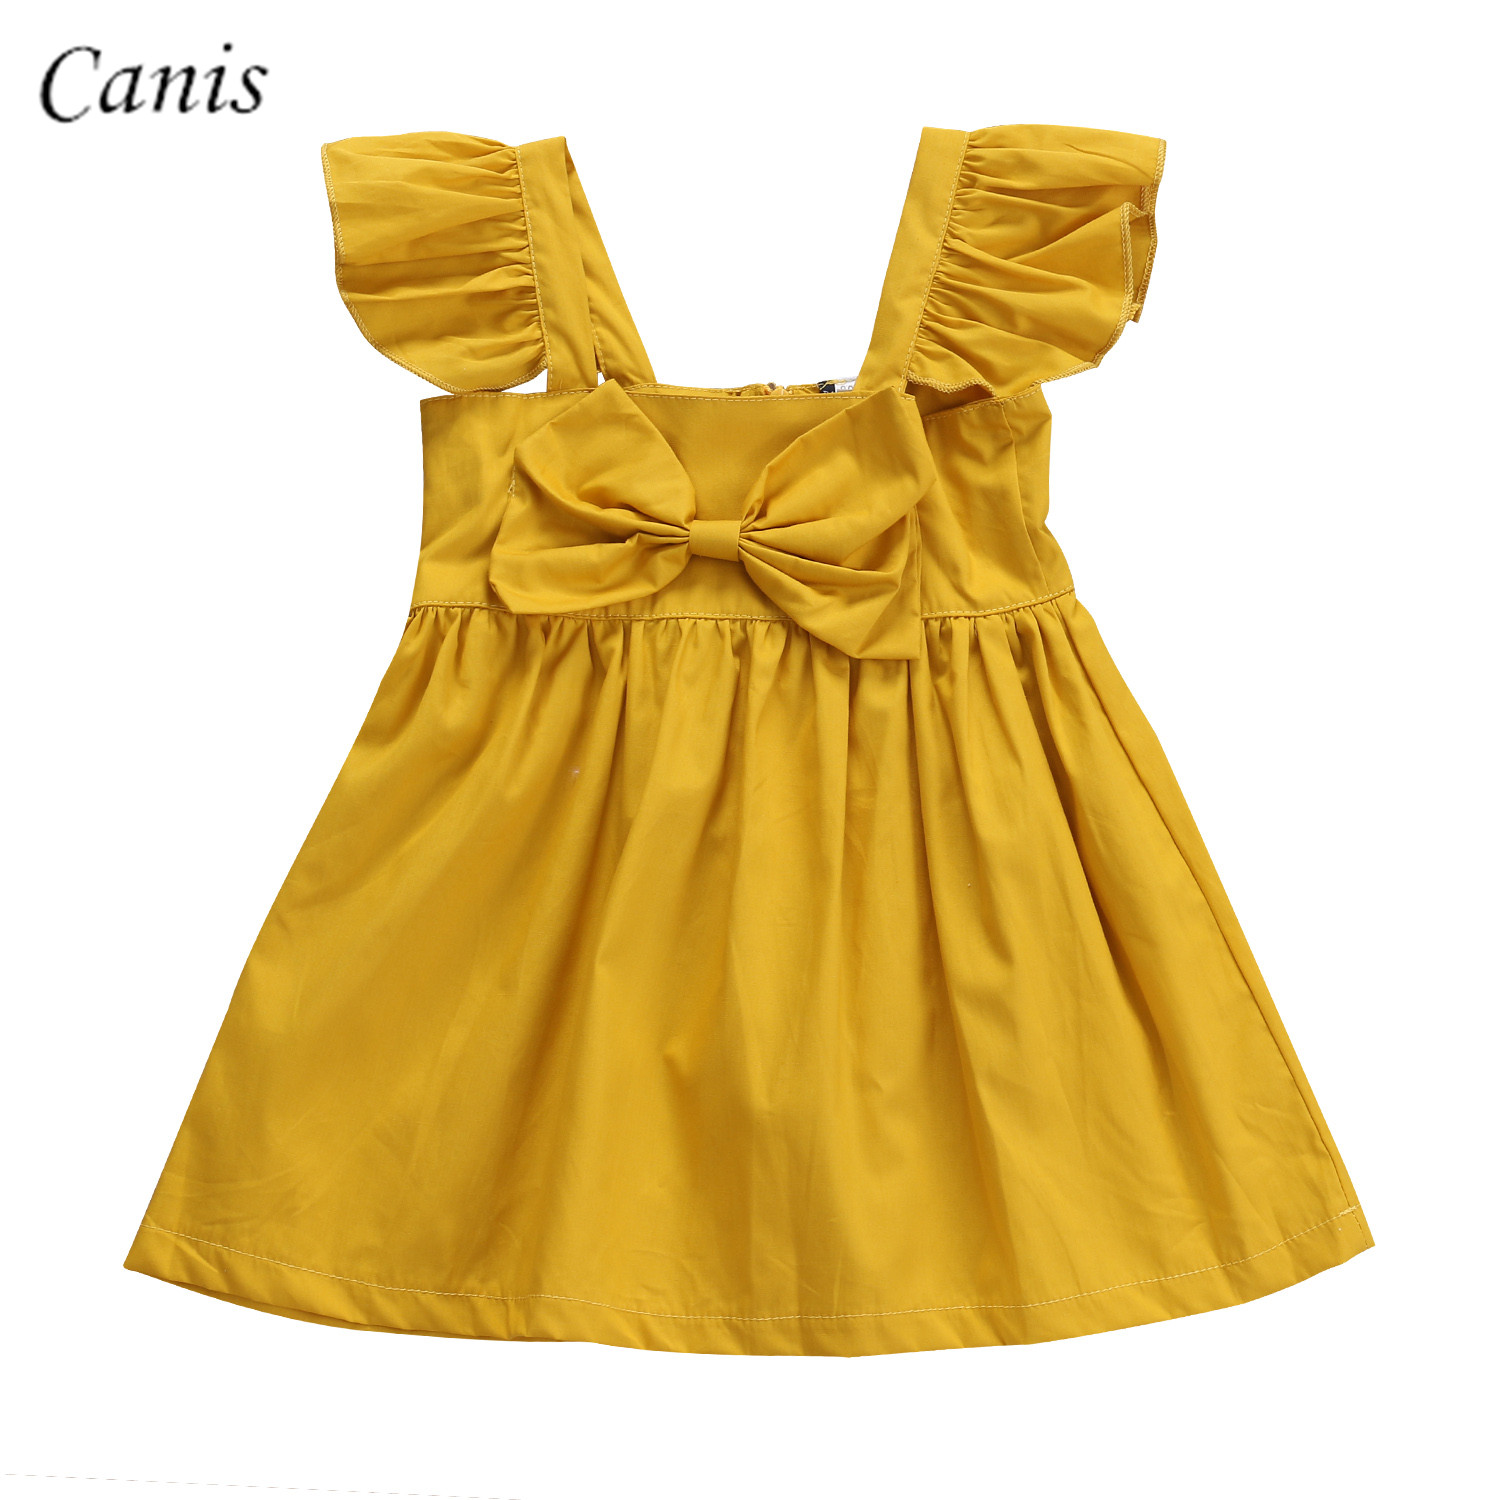 2017 Newborn Infant Cute Kids Baby Girls Yellow Dress Clothes